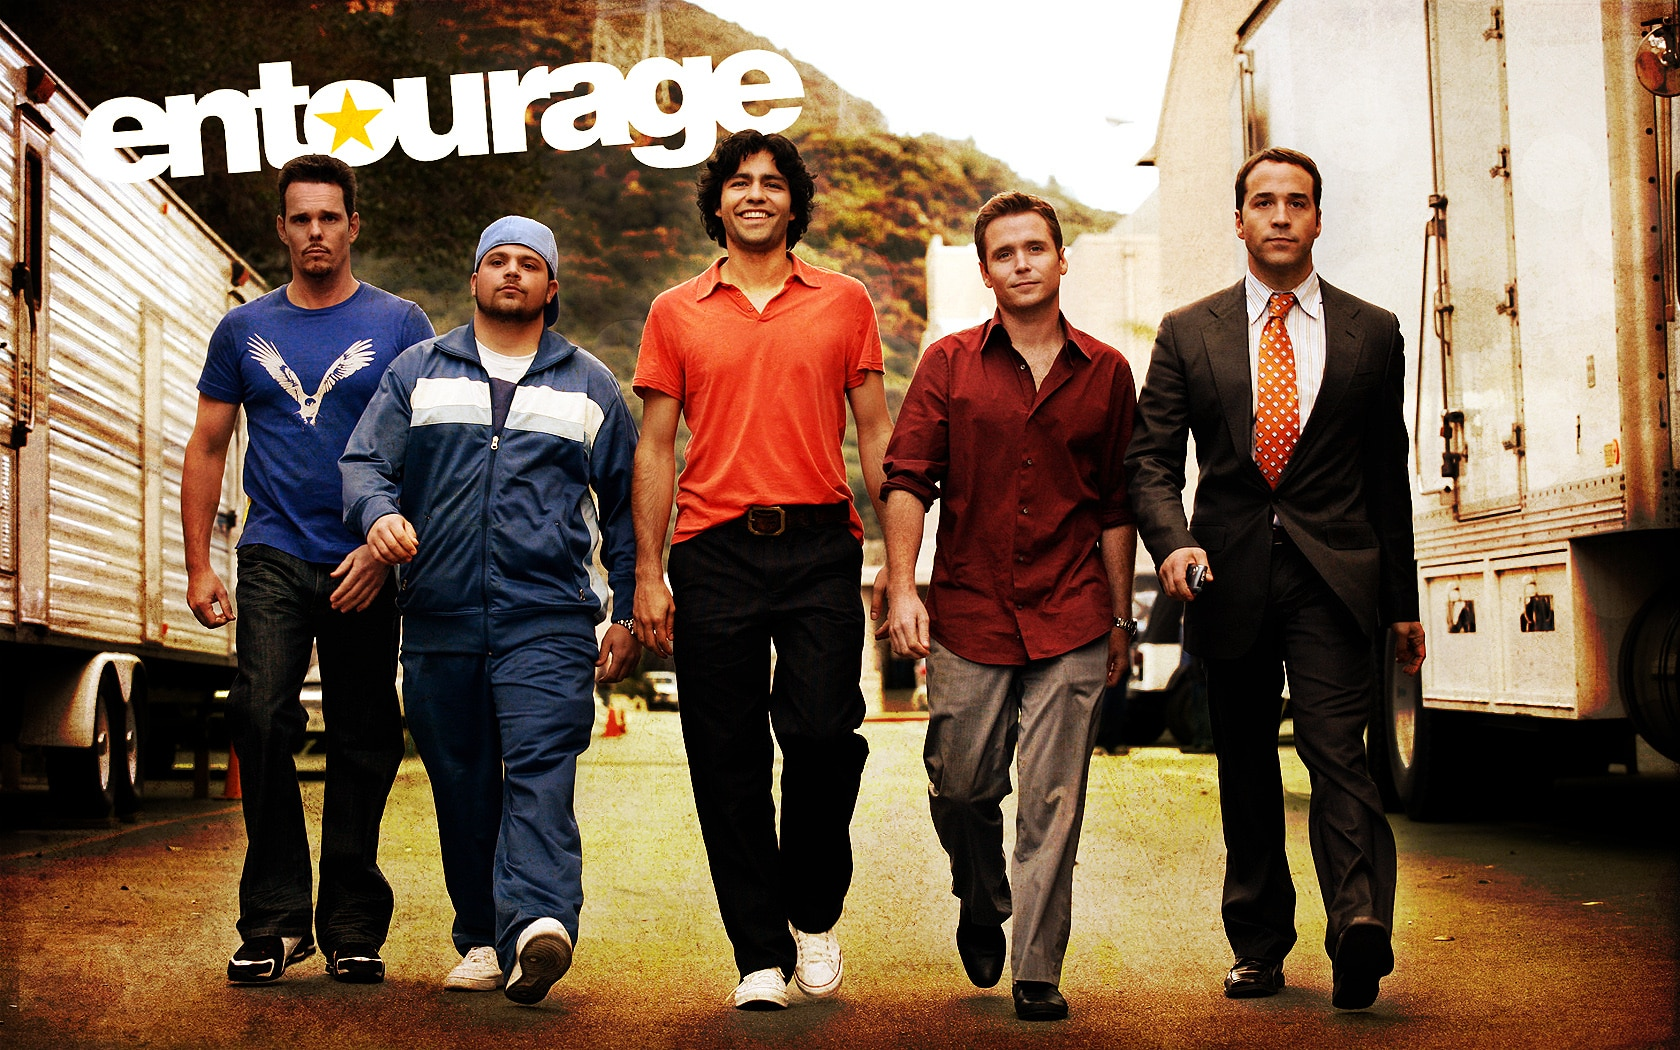 Imagen promocional de  Entourage, cinta que llegará a HBO Now, plataforma de Video on Demand de HBO, con contenido original y exclusivo de la compañía. Como cada mes, HBO Now y HBO han revelado todos los shows y cintas que llegarán este mes, esta ocasión en Enero de 2016 exclusivamente a su plataforma de Video on Demand. Entre lo destacado que llegará este mes a la plataforma de HBO Now están grandes películas como: Mad Max: Fury Road, The Muppet Christmas Carol, The Second Best Exotic Marigold Hotel, Tropic Thunder, Whitney Cummings: I'm Your Girlfriend, Borat: Cultural Learnings of America for Make Benefit Glorious Nation of Kazakhstan, Carrie, Entourage y Final Destination 3.